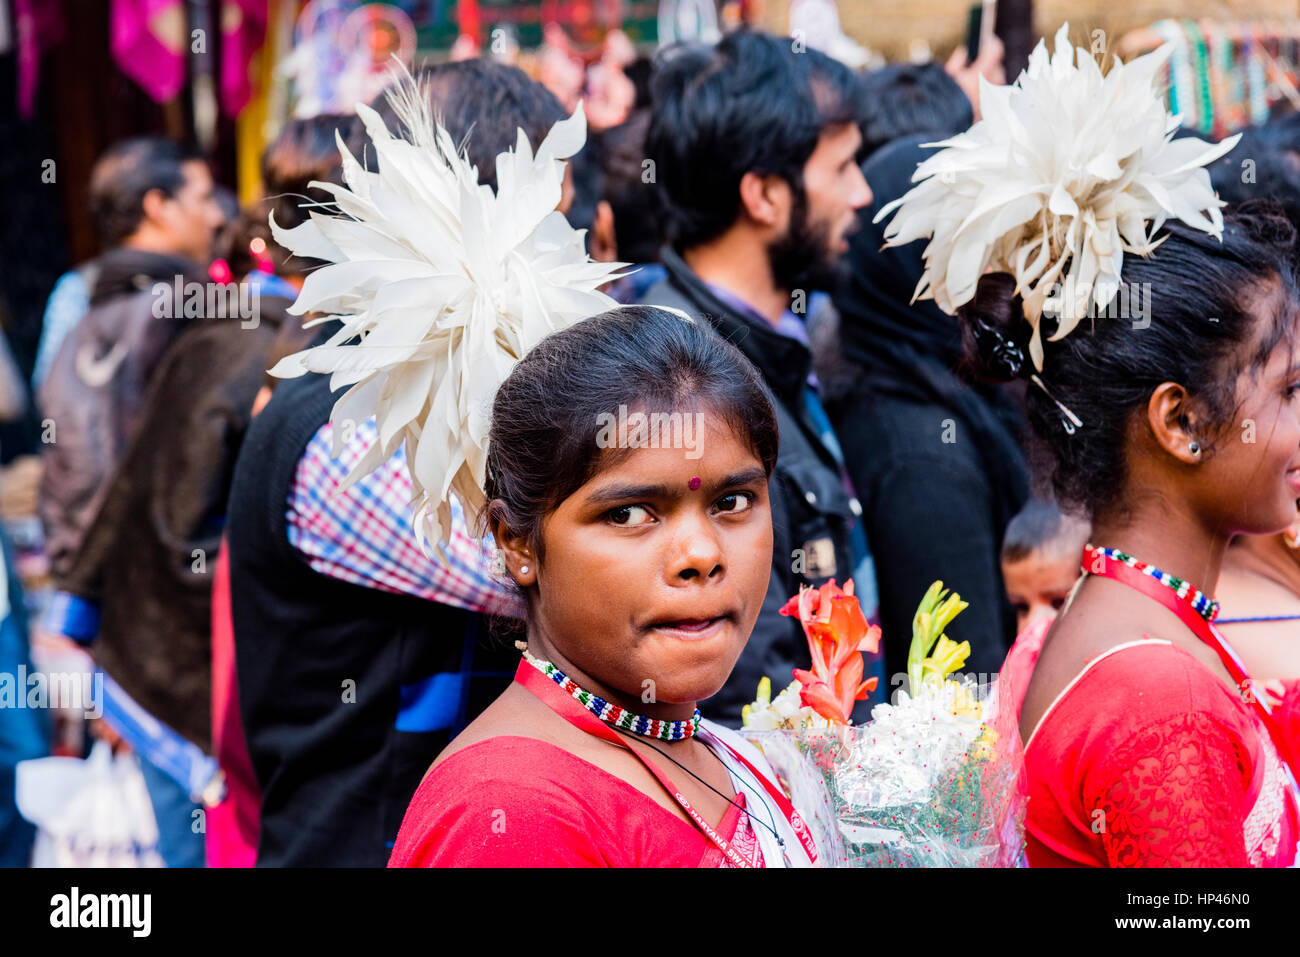 cc63eac069 Tribals from the state of Jharkhand performing tribal dance at an event. -  Stock Image